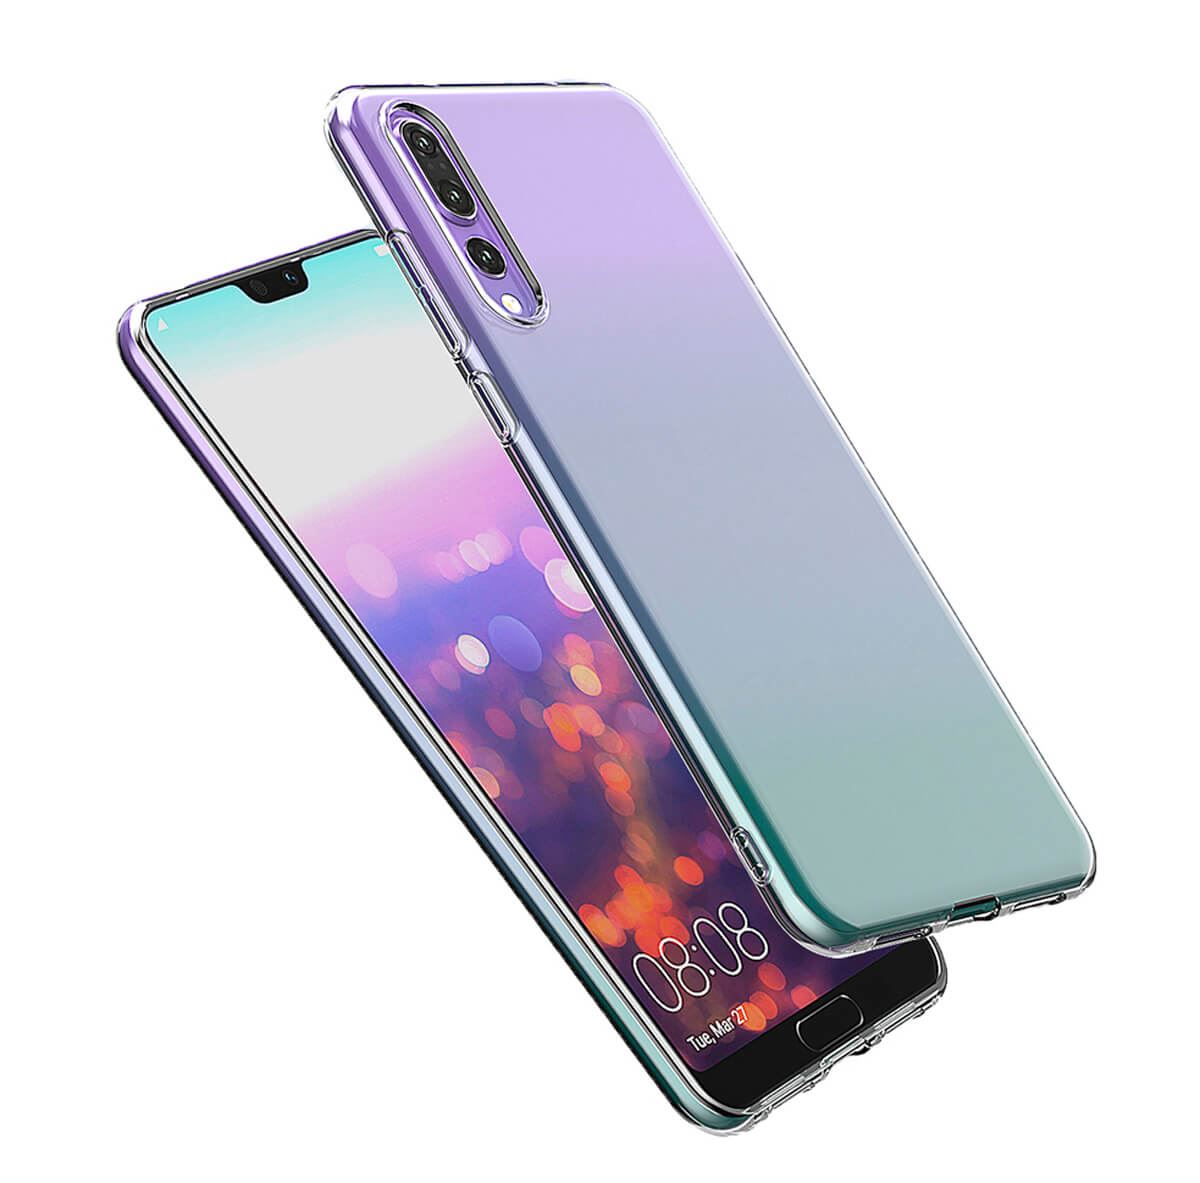 Shockproof-Silicone-Protective-Clear-Gel-Cover-Case-For-Huawei-P20-Pro-P-Smart thumbnail 28